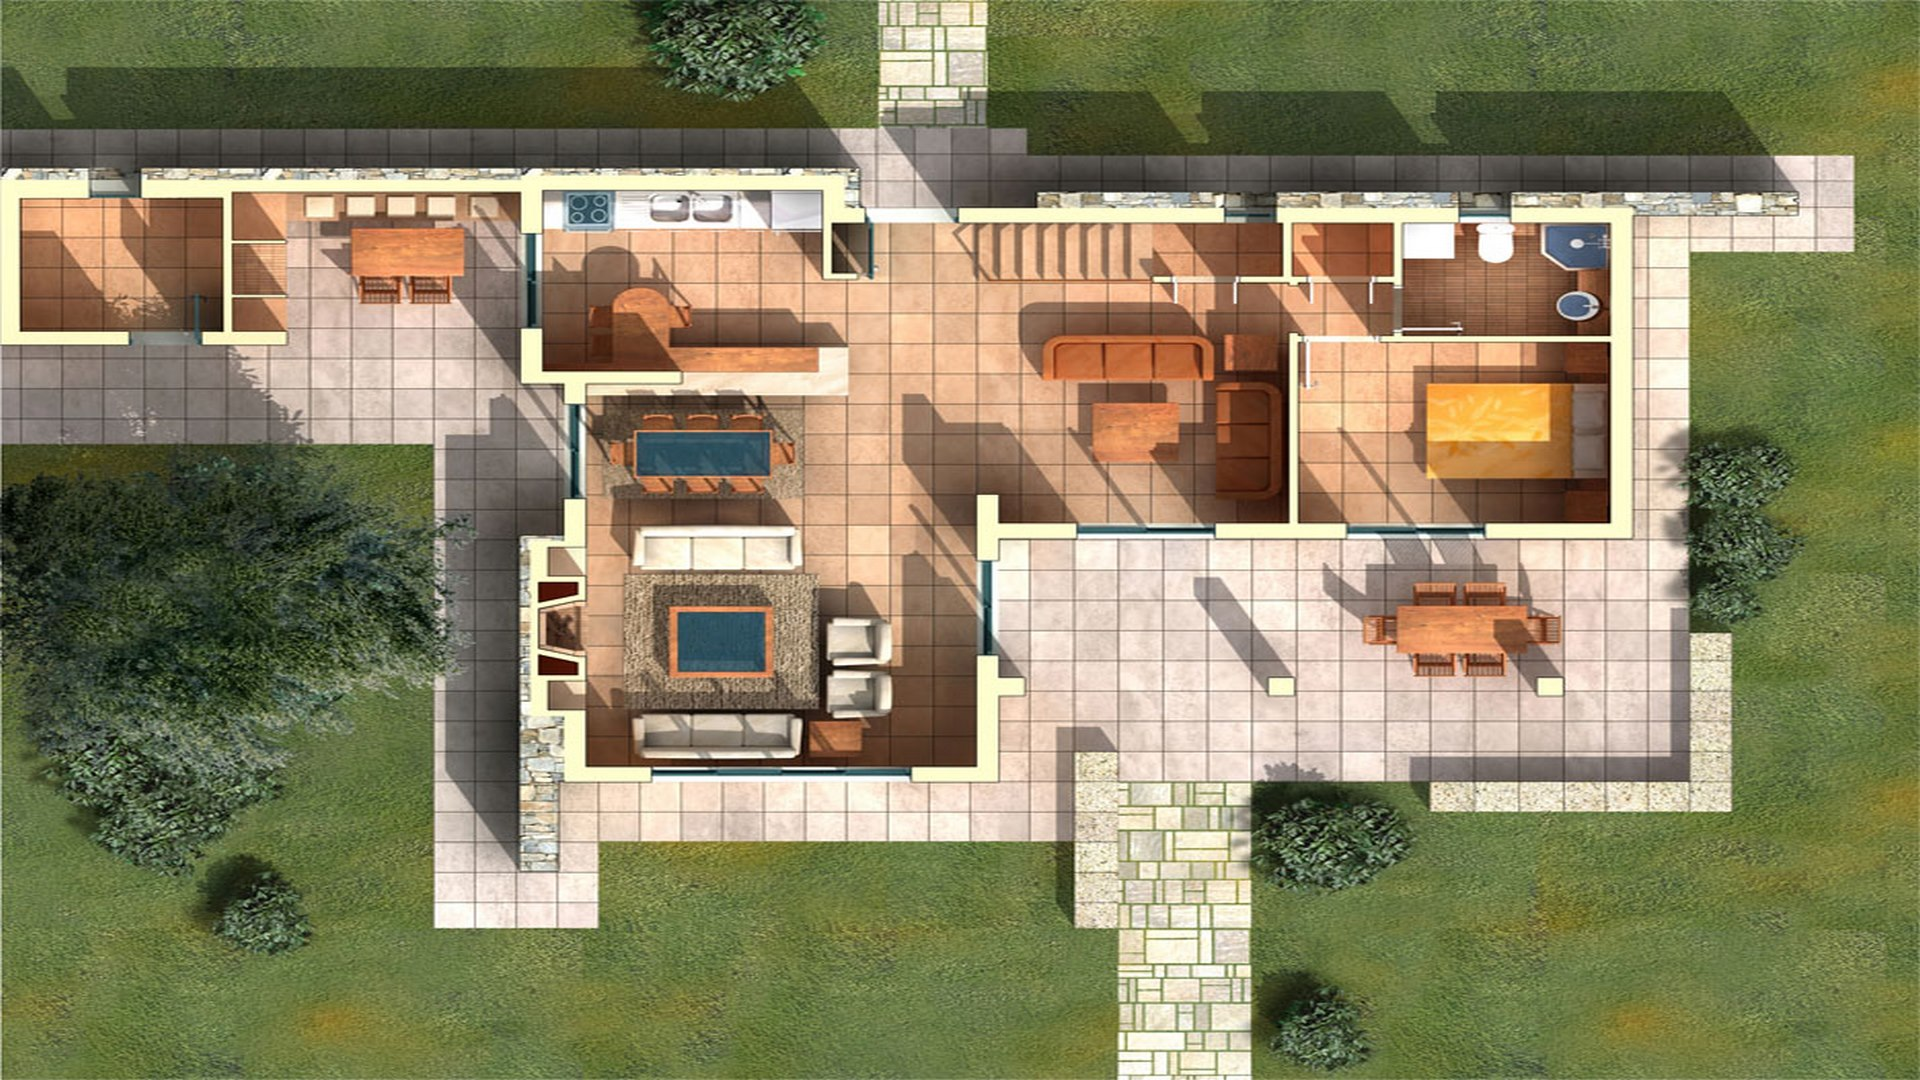 House Type A: Ground Floor